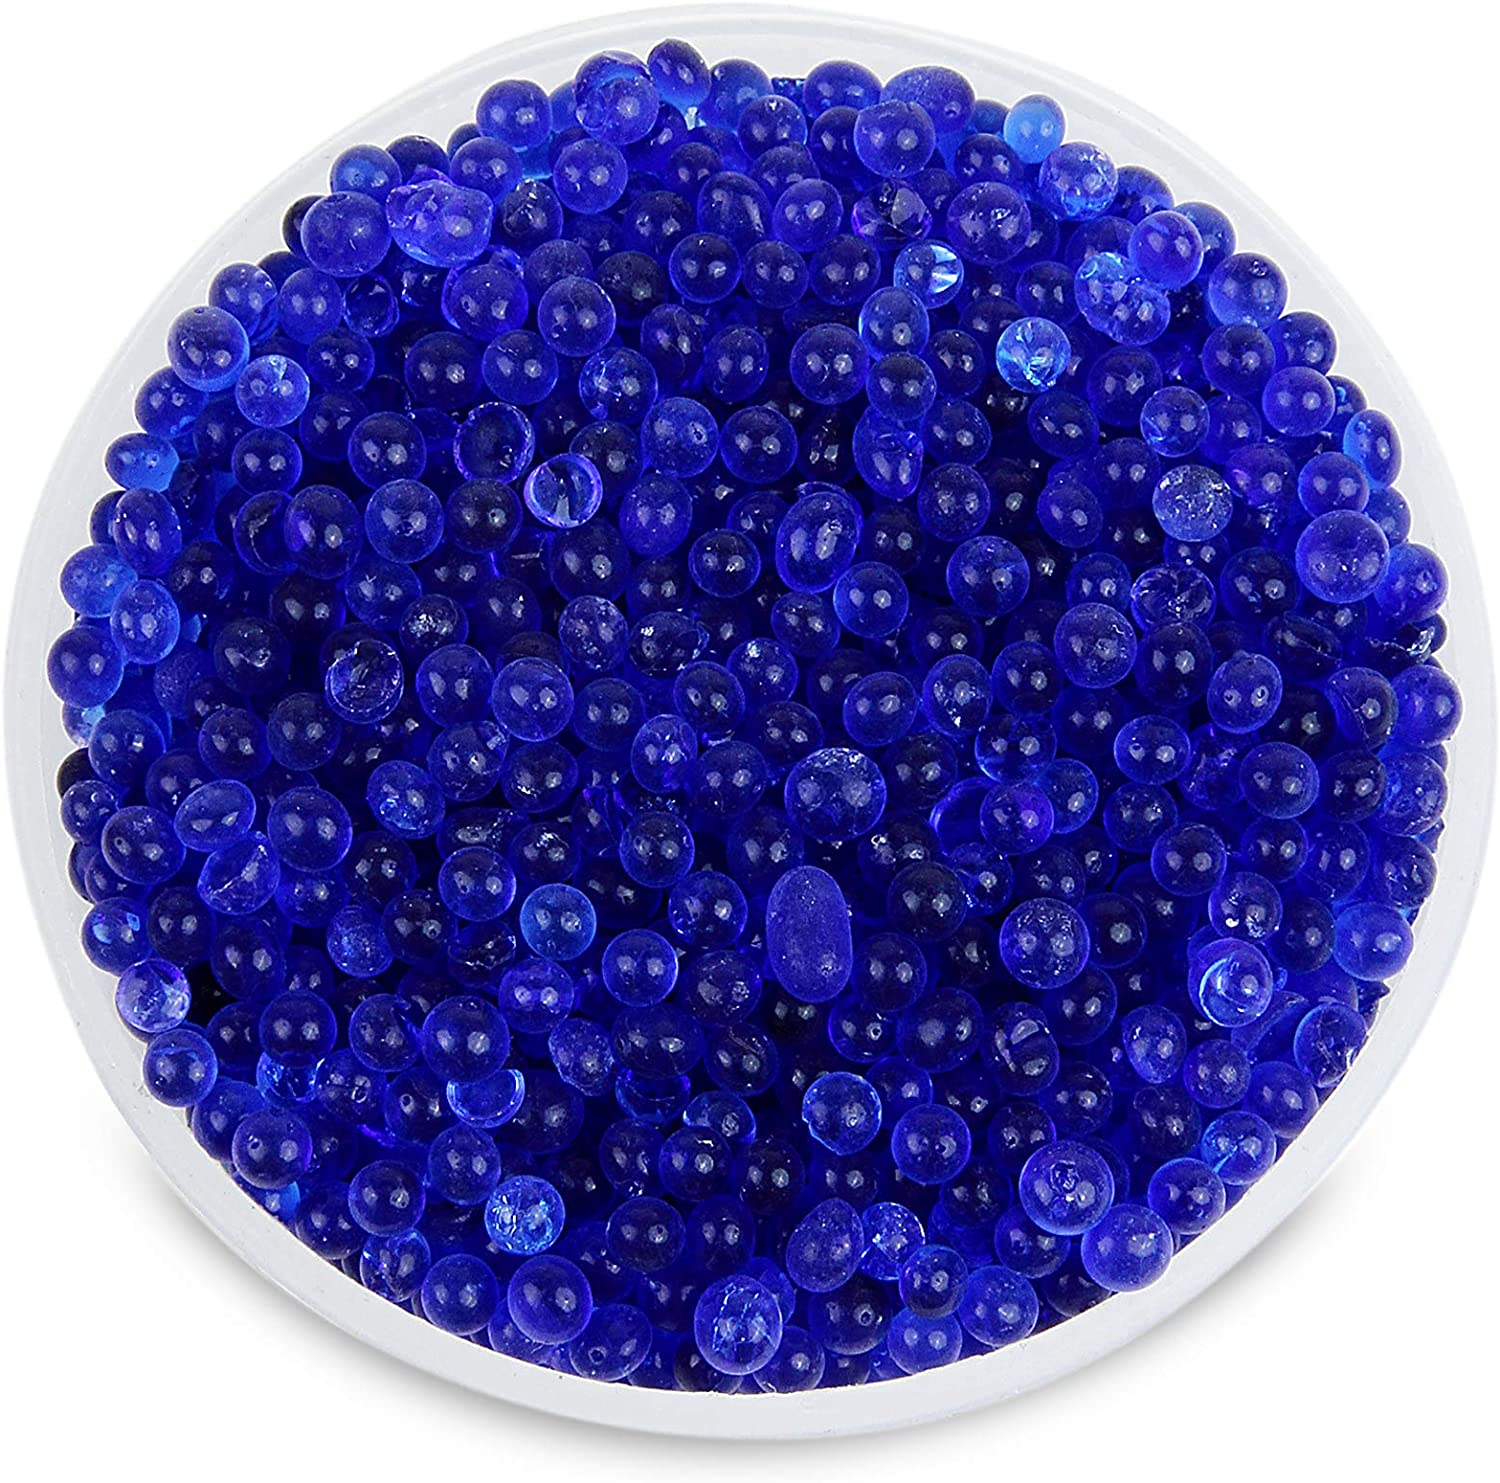 Wisesorb 8LBS Premium Quality Reusable Indicating Silica Gel Desiccant Beads-Rechargeable Blue to Pink